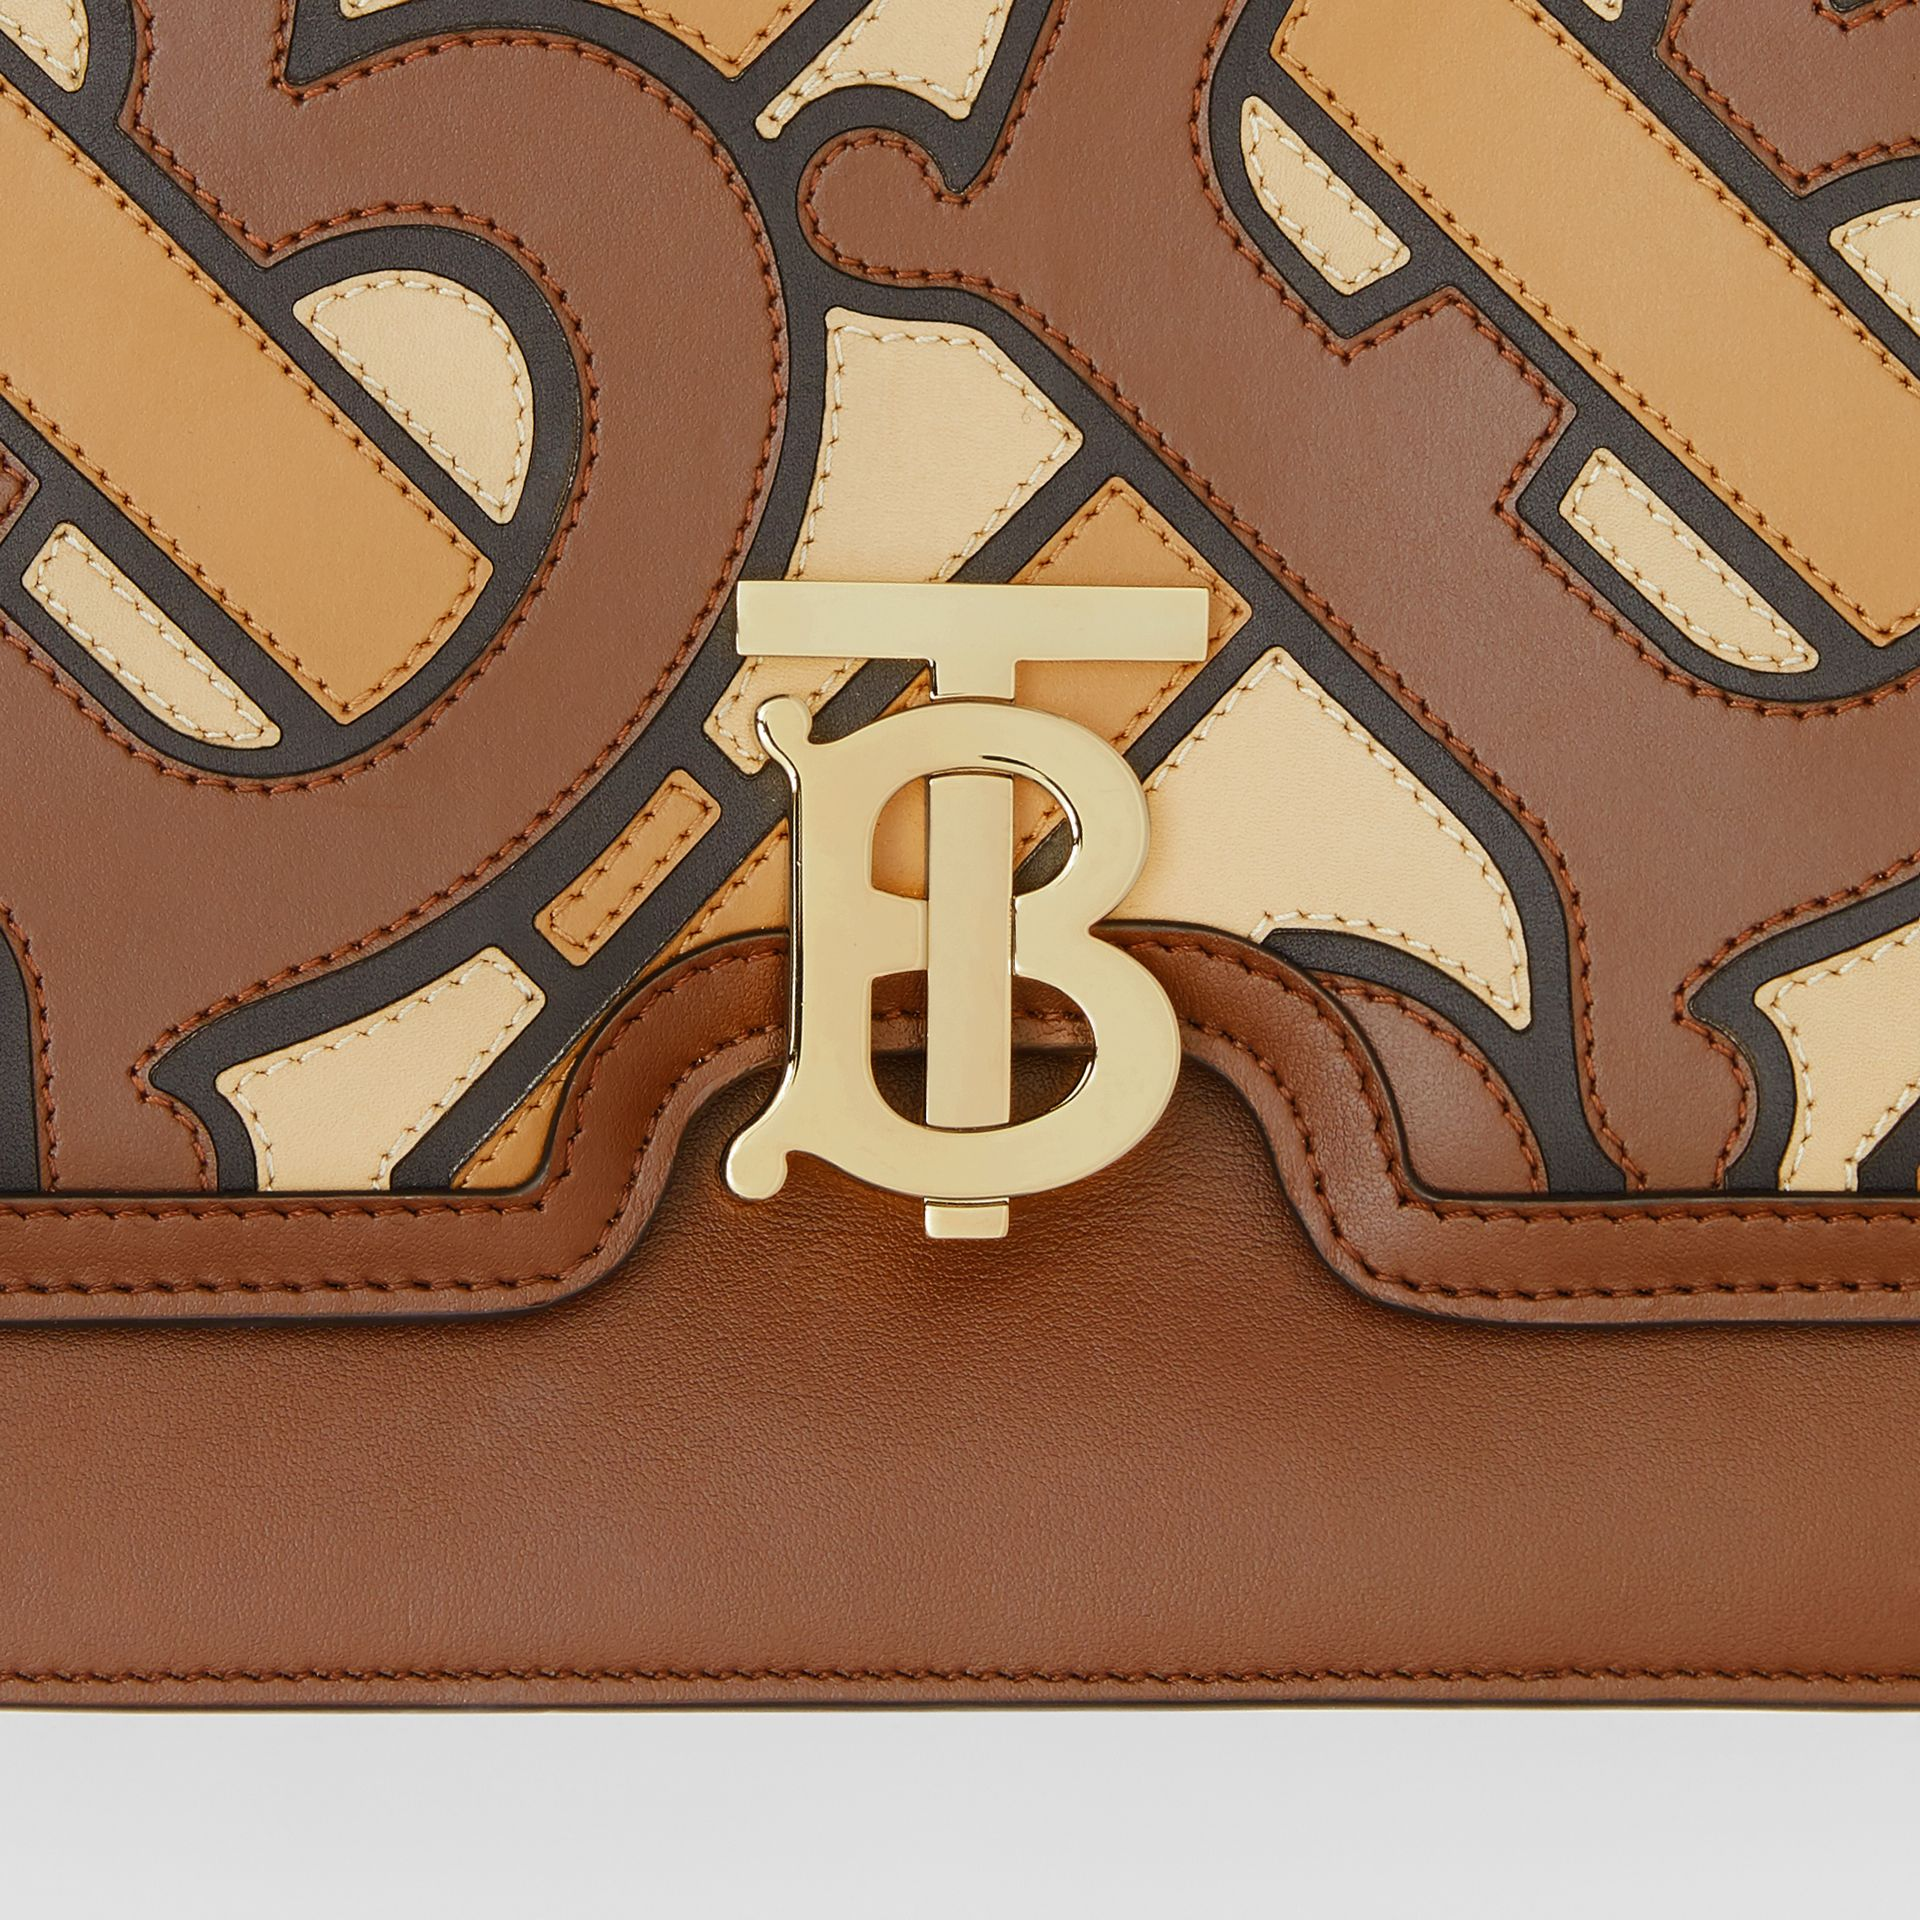 Medium Monogram Appliqué Leather TB Bag in Brown - Women | Burberry - gallery image 1